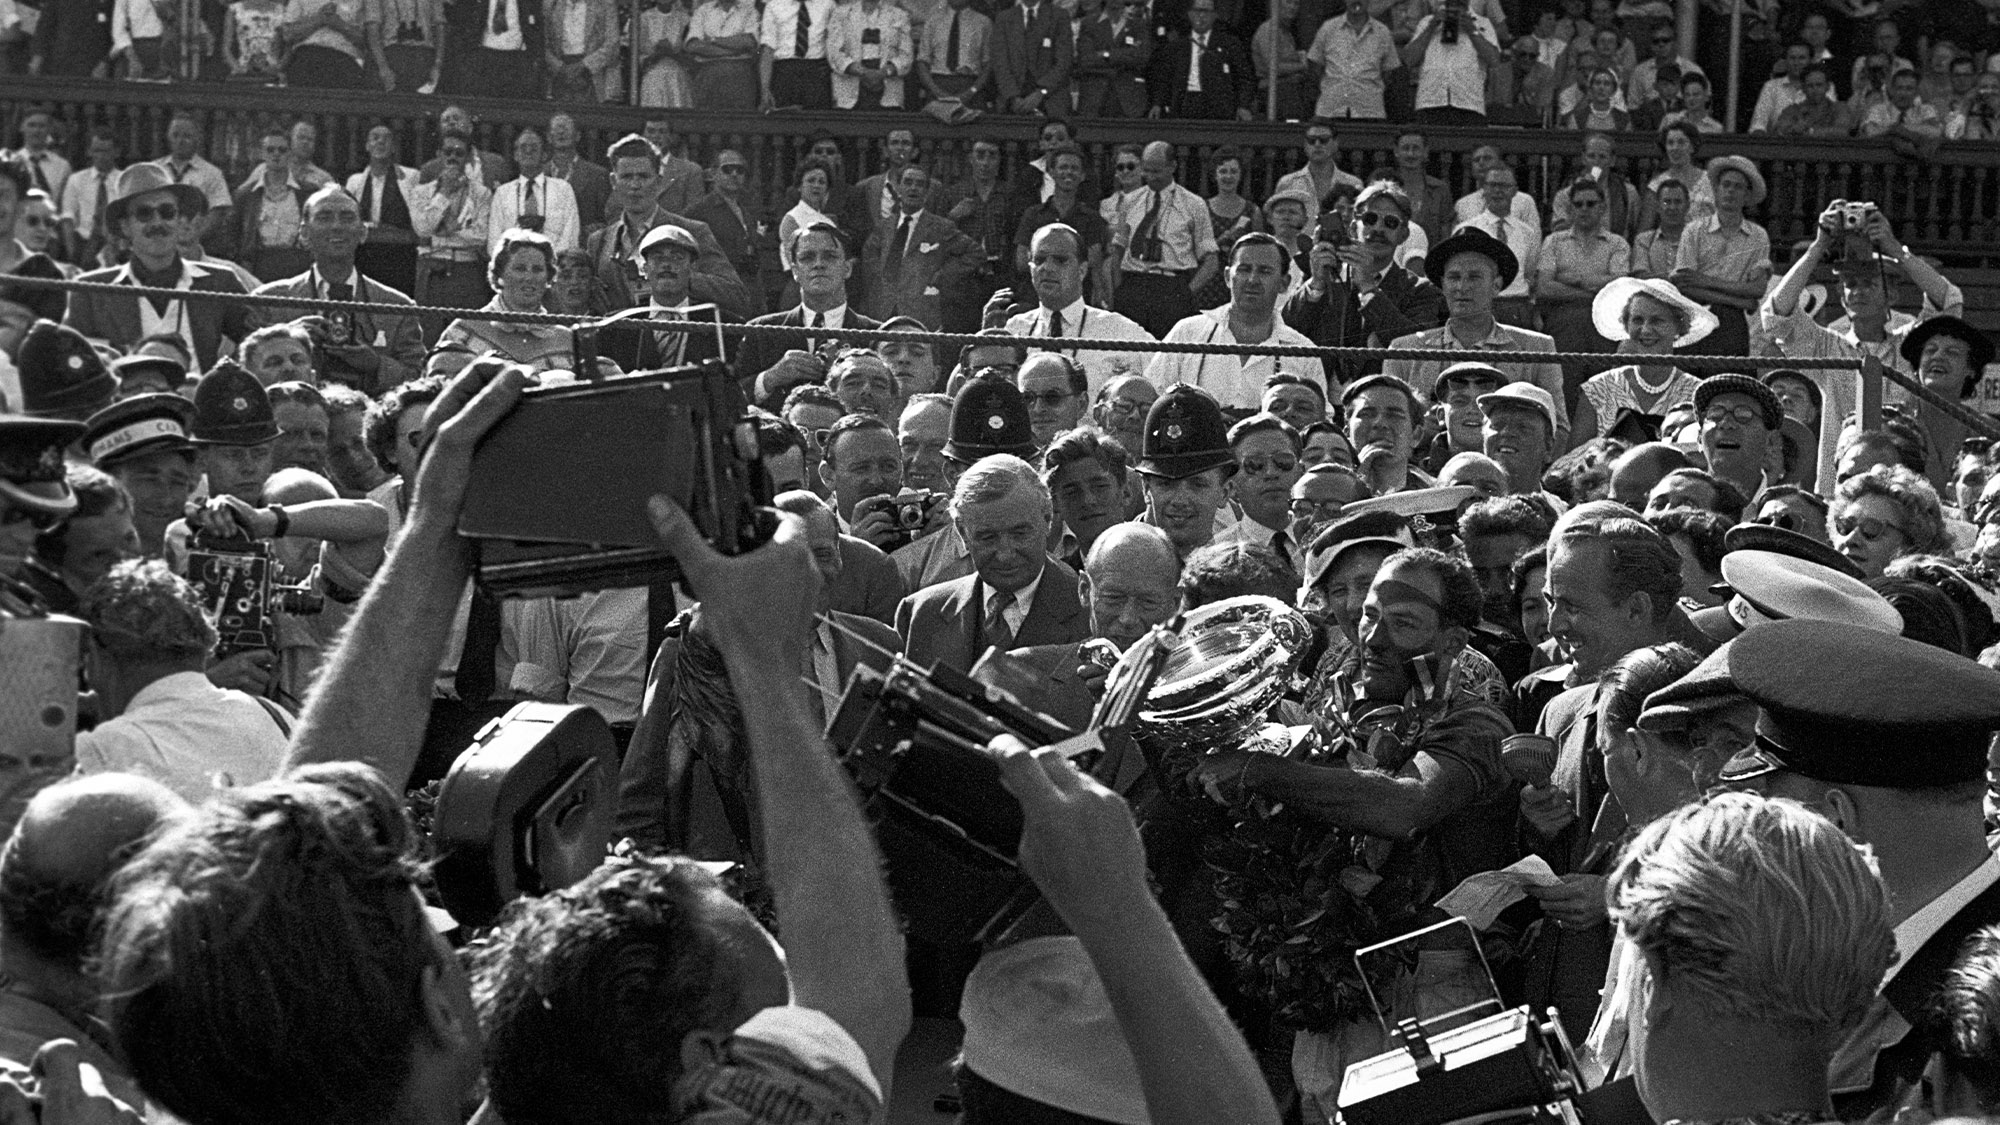 Stirling Moss surrounded by crowds after winning the 1955 British Grand Prix at Aintree